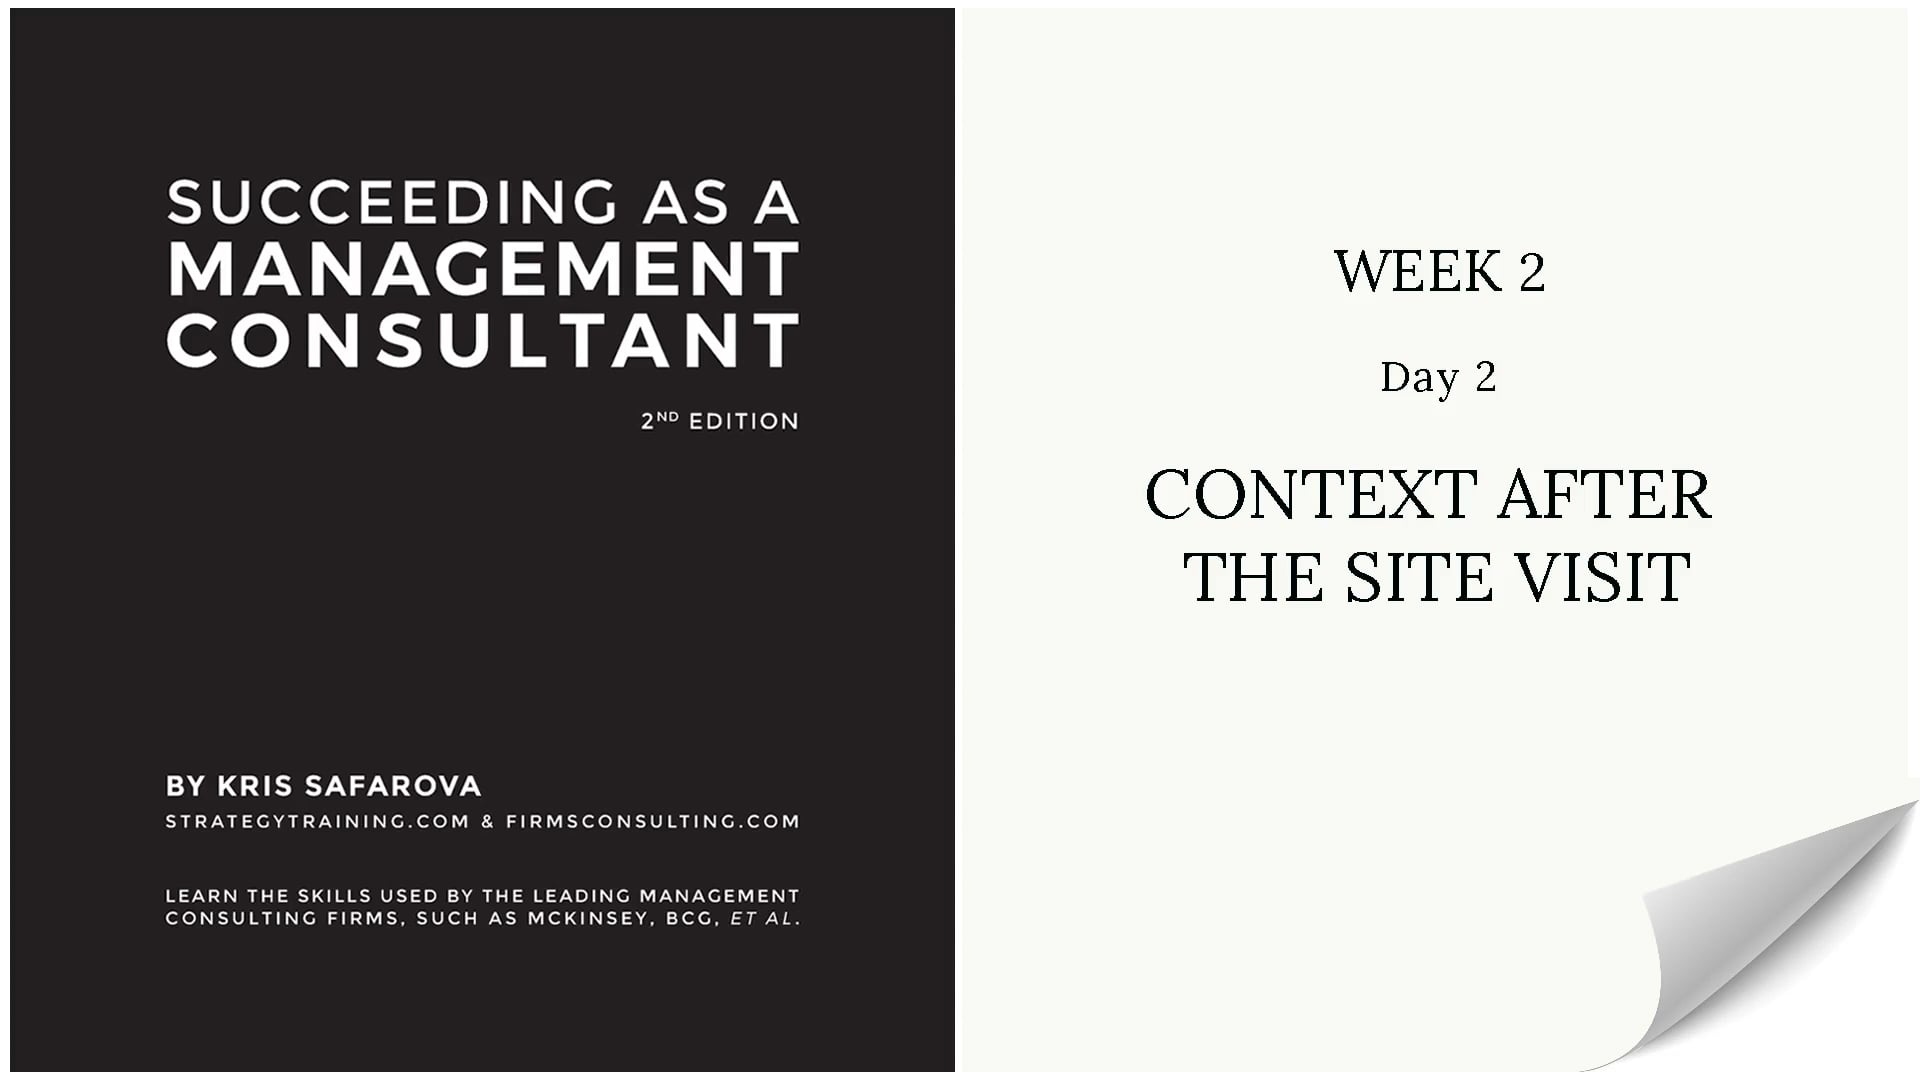 018 SAAMC Week 2 - Day 2 Context Afte...